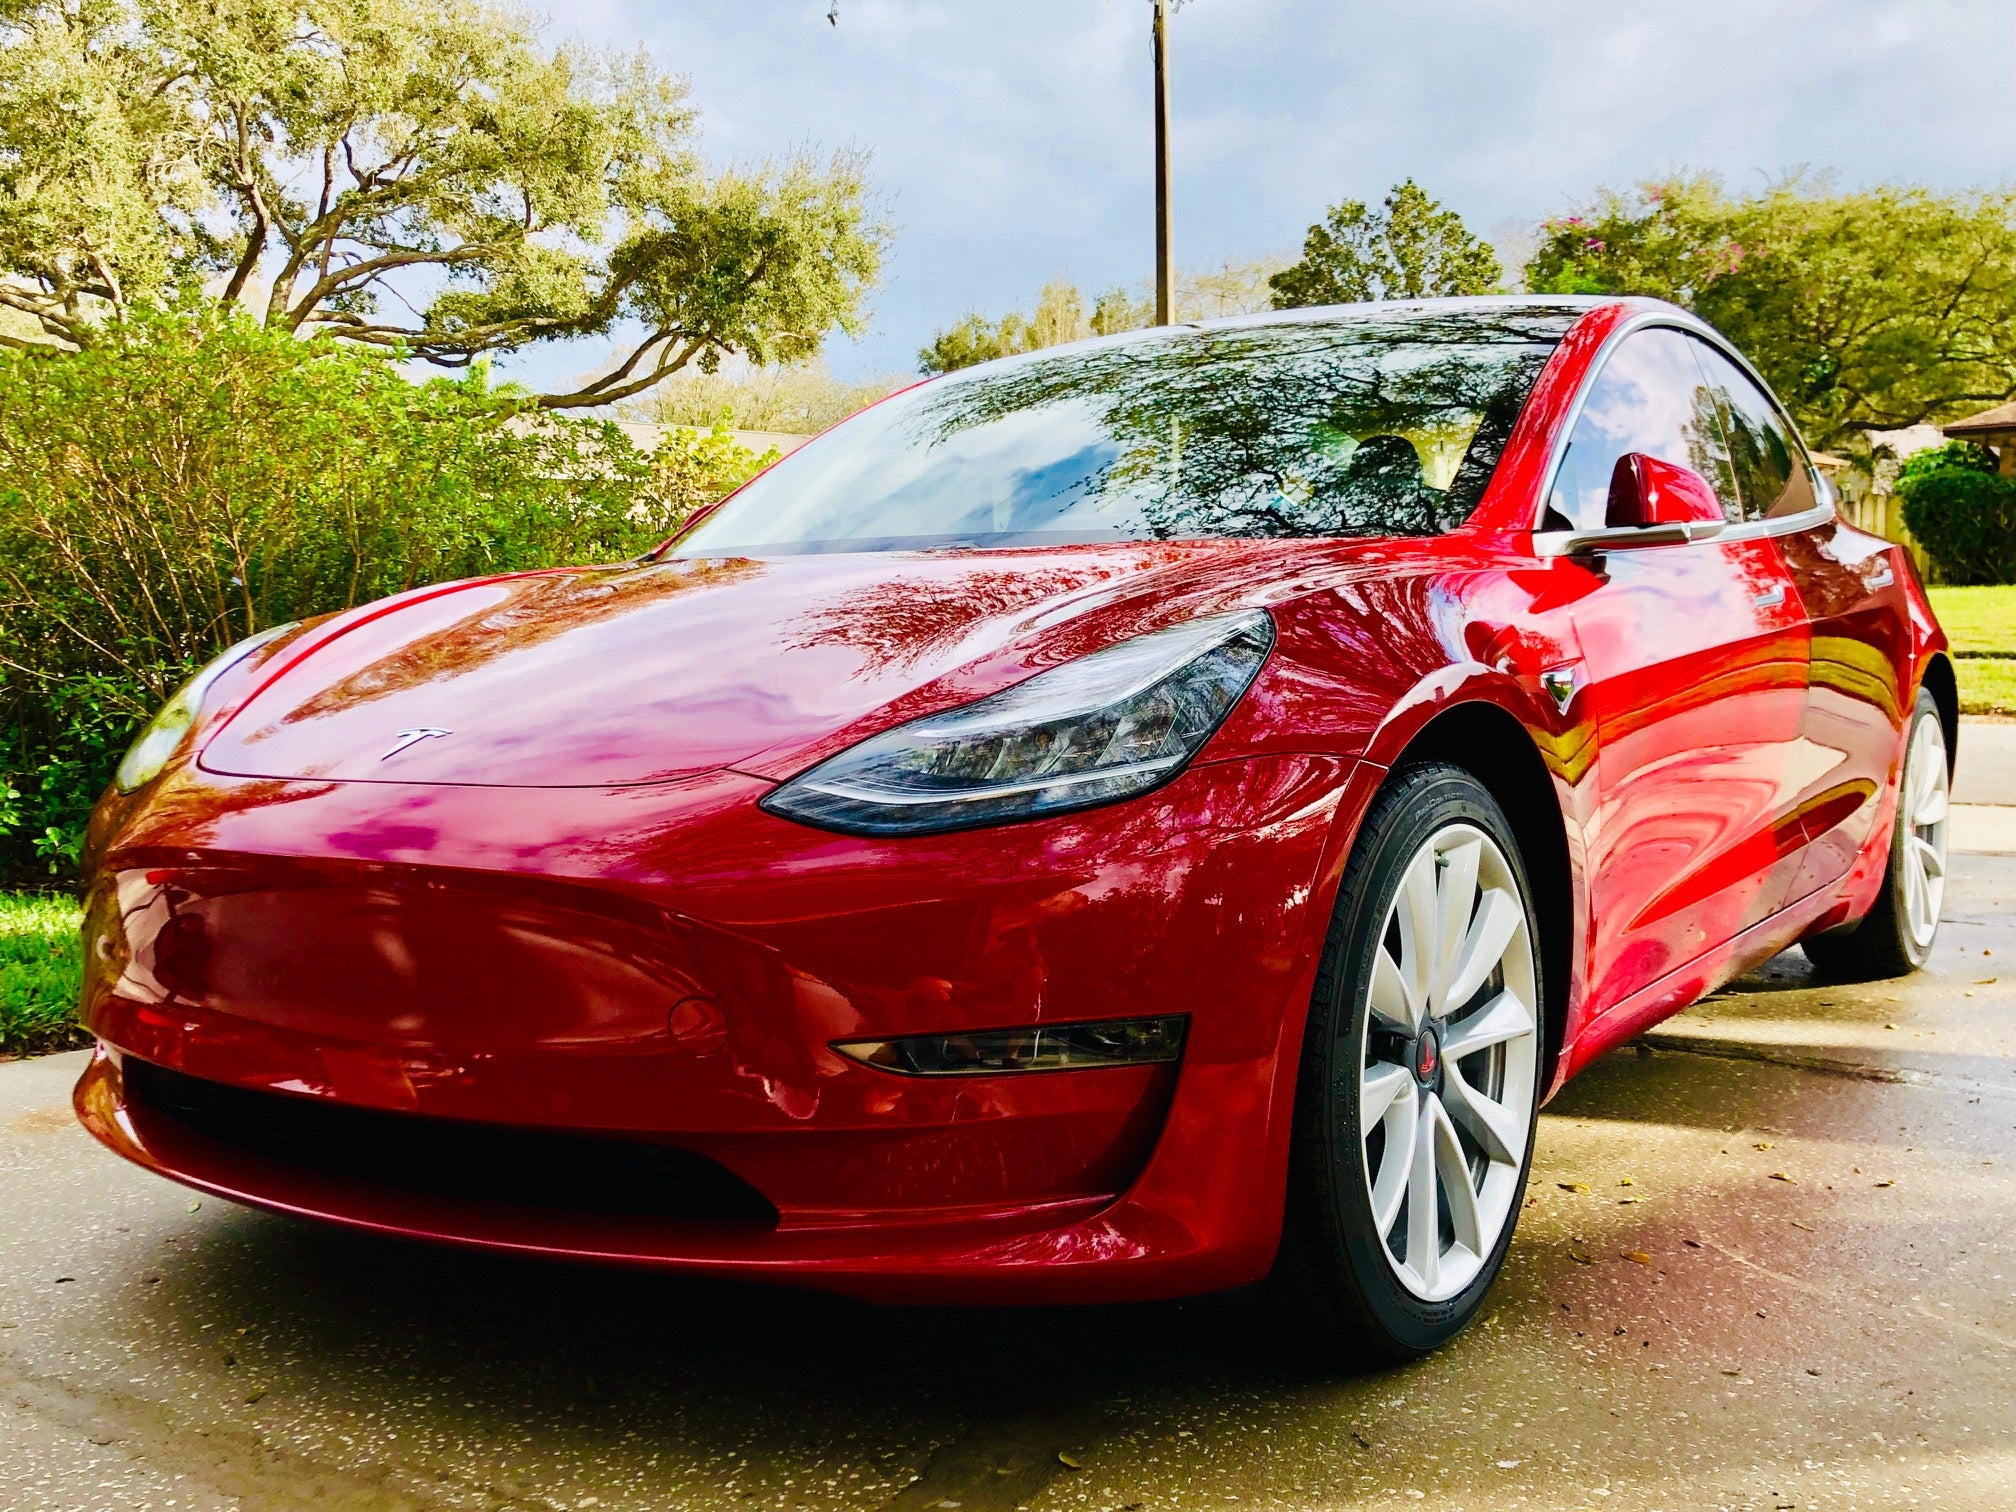 Blue Book Value for Used Cars Beautiful Kelley Blue Book Tesla Model 3 to Be 2 Vehicle In Usa at Holding